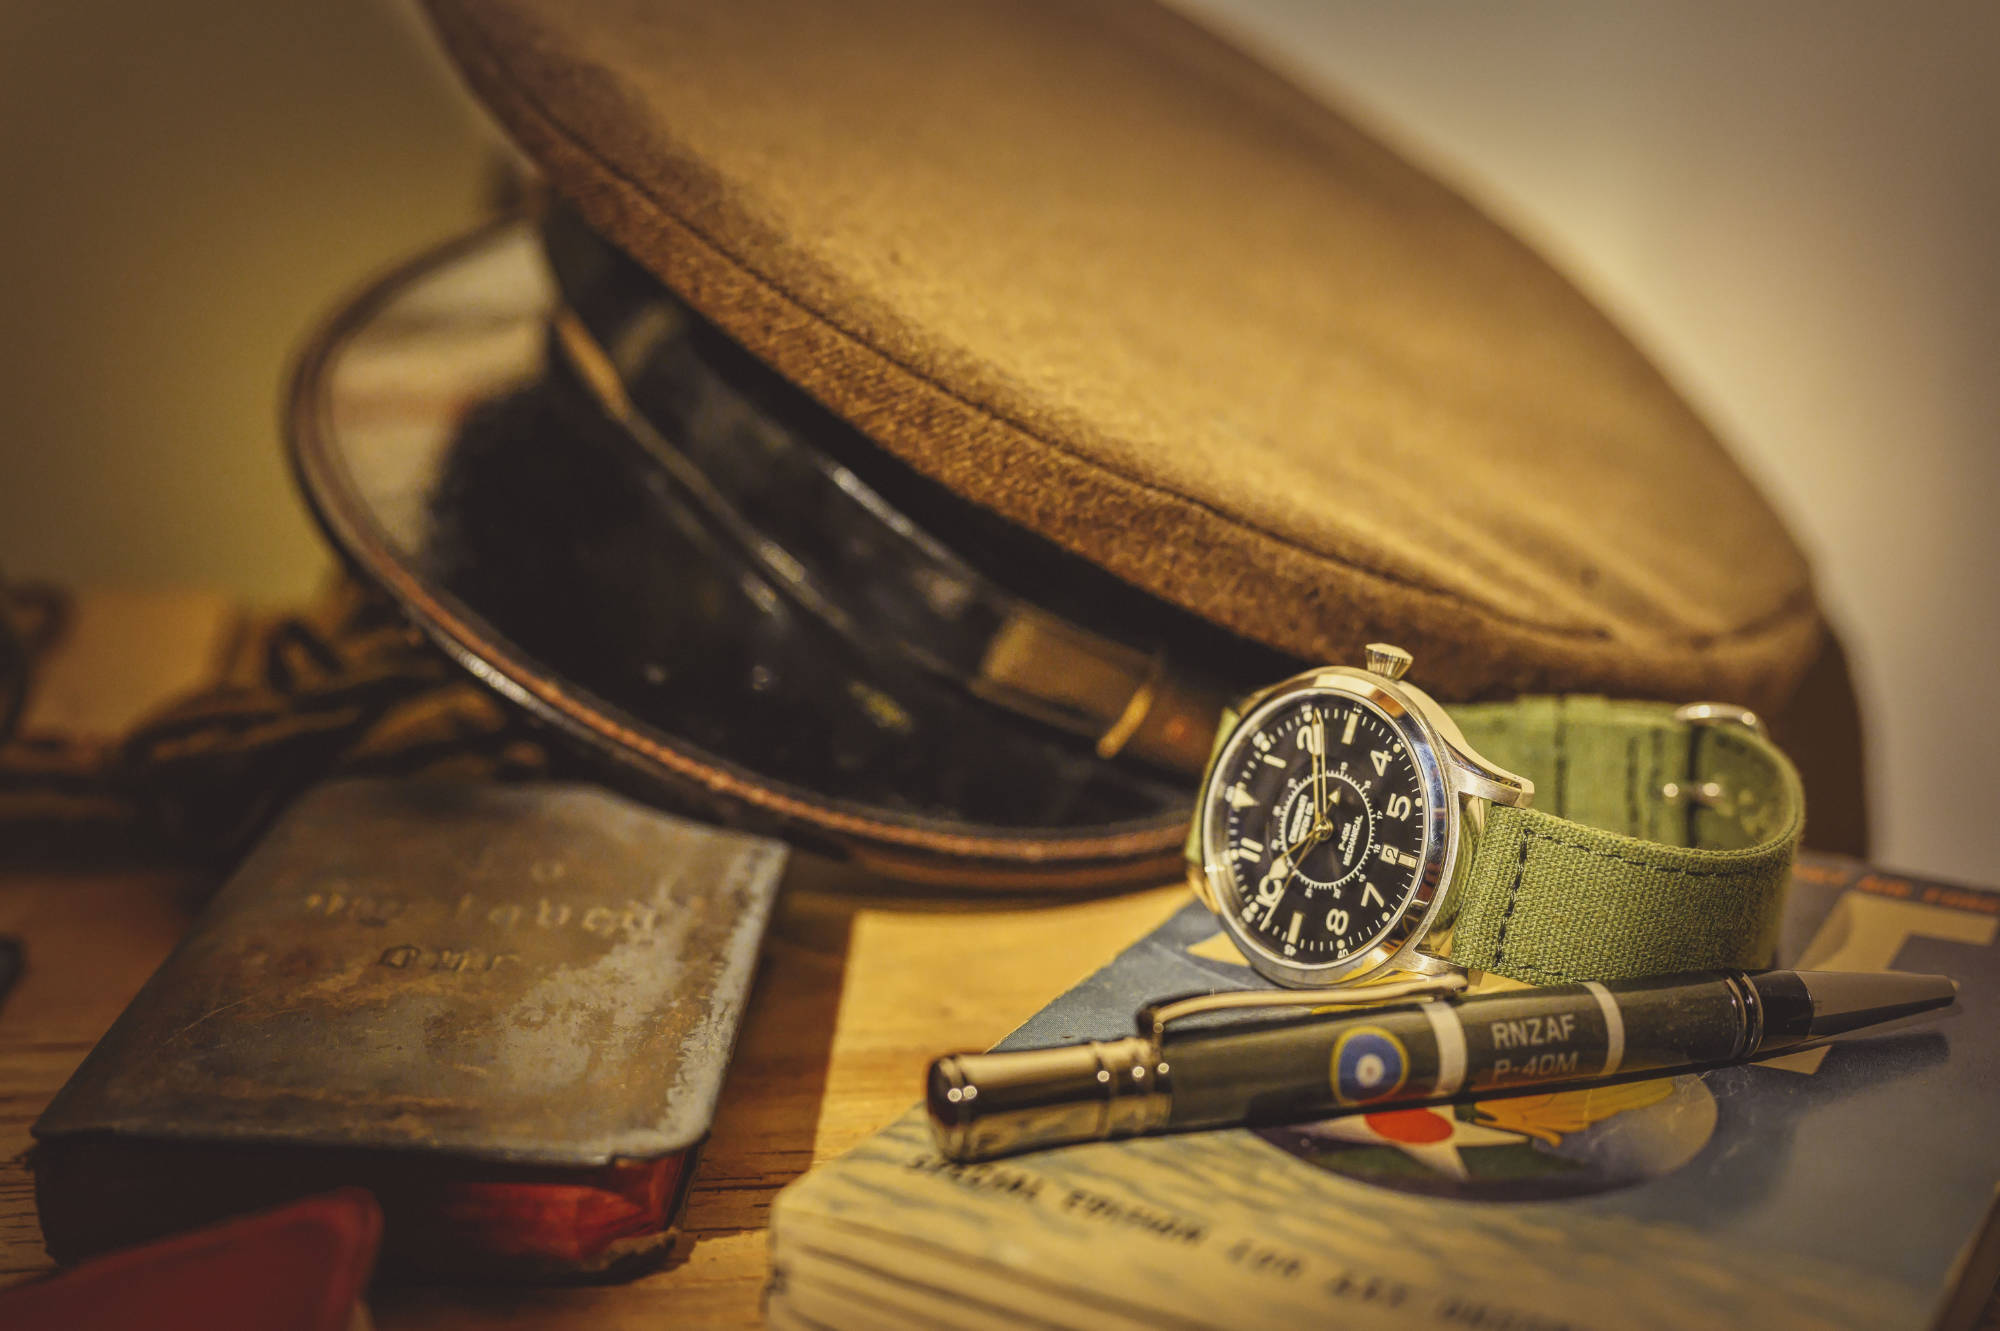 The P-40M Mechanical pilot watch by Build Your Own Watch